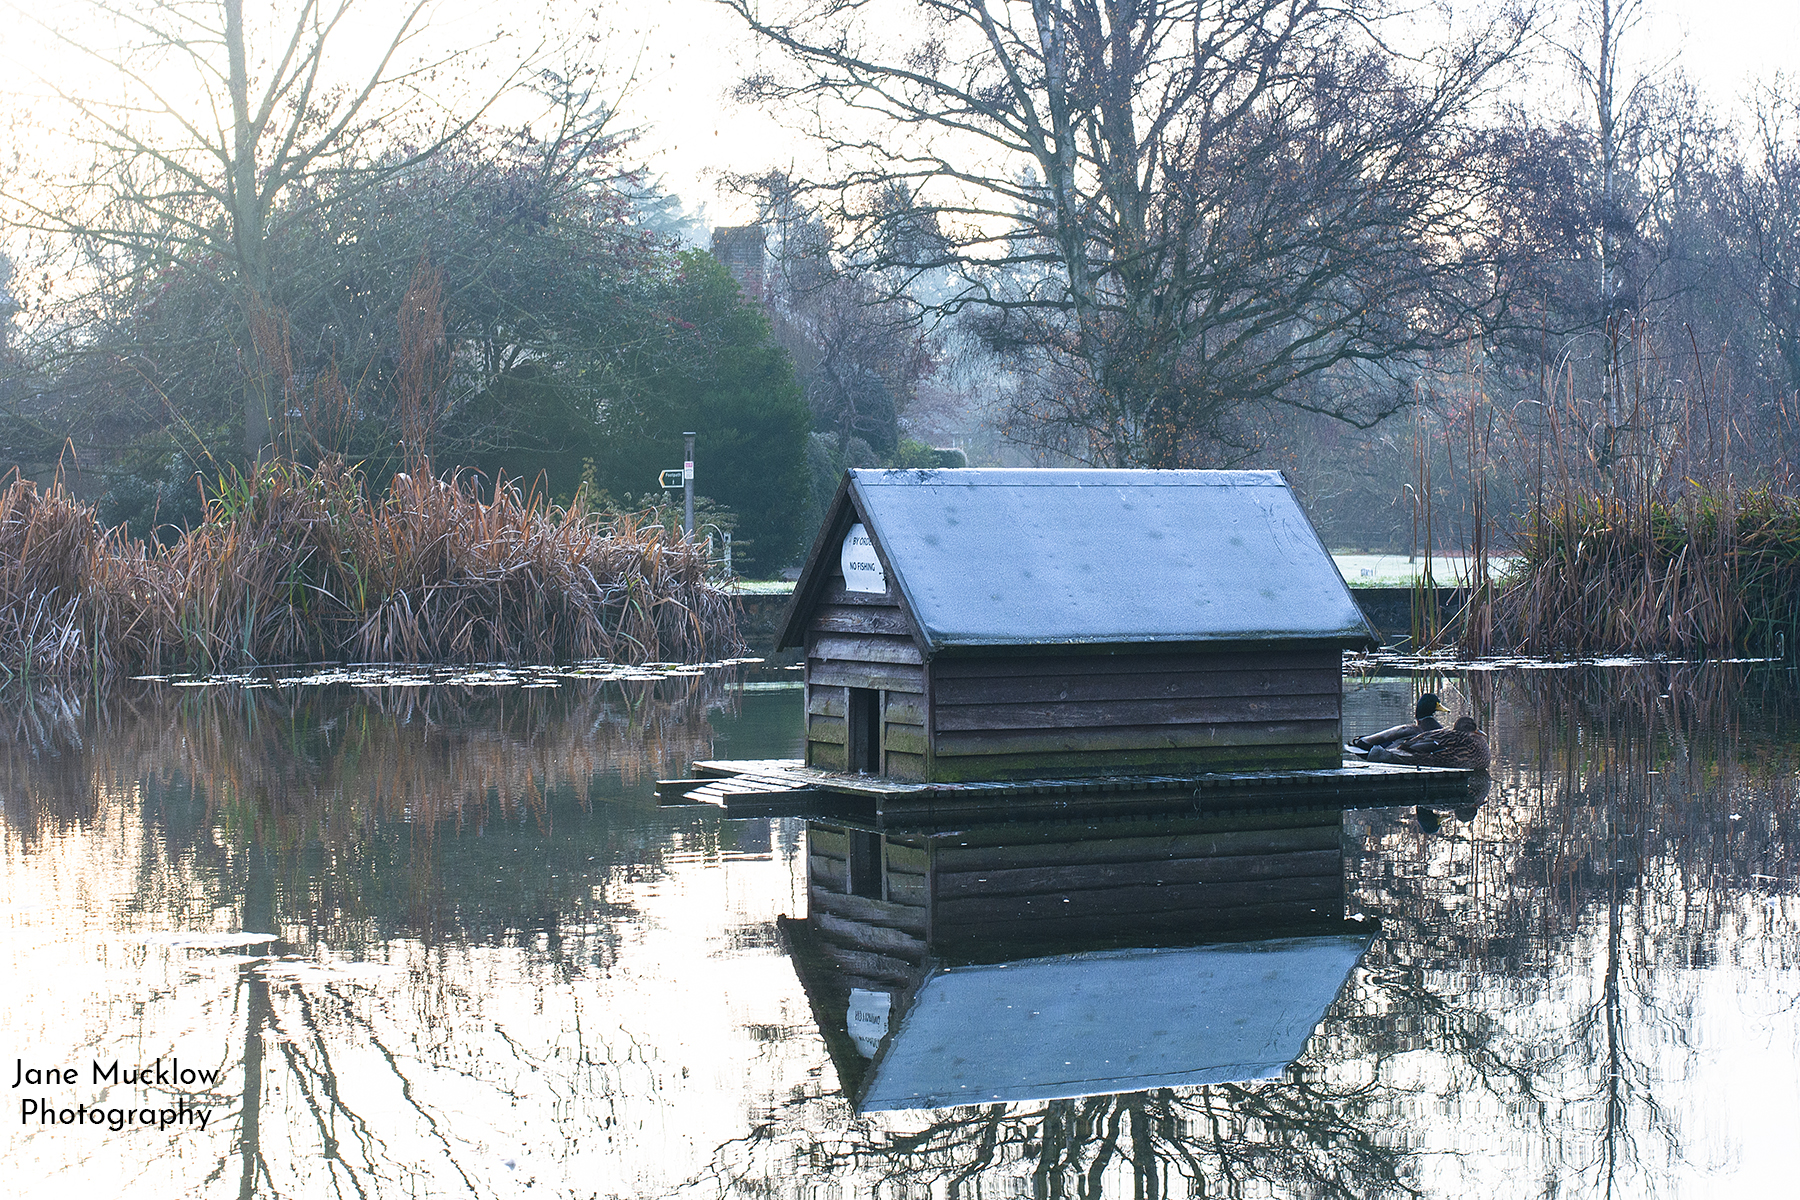 Photograph by Jane Mucklow of the duck pond and a frosty duckhouse